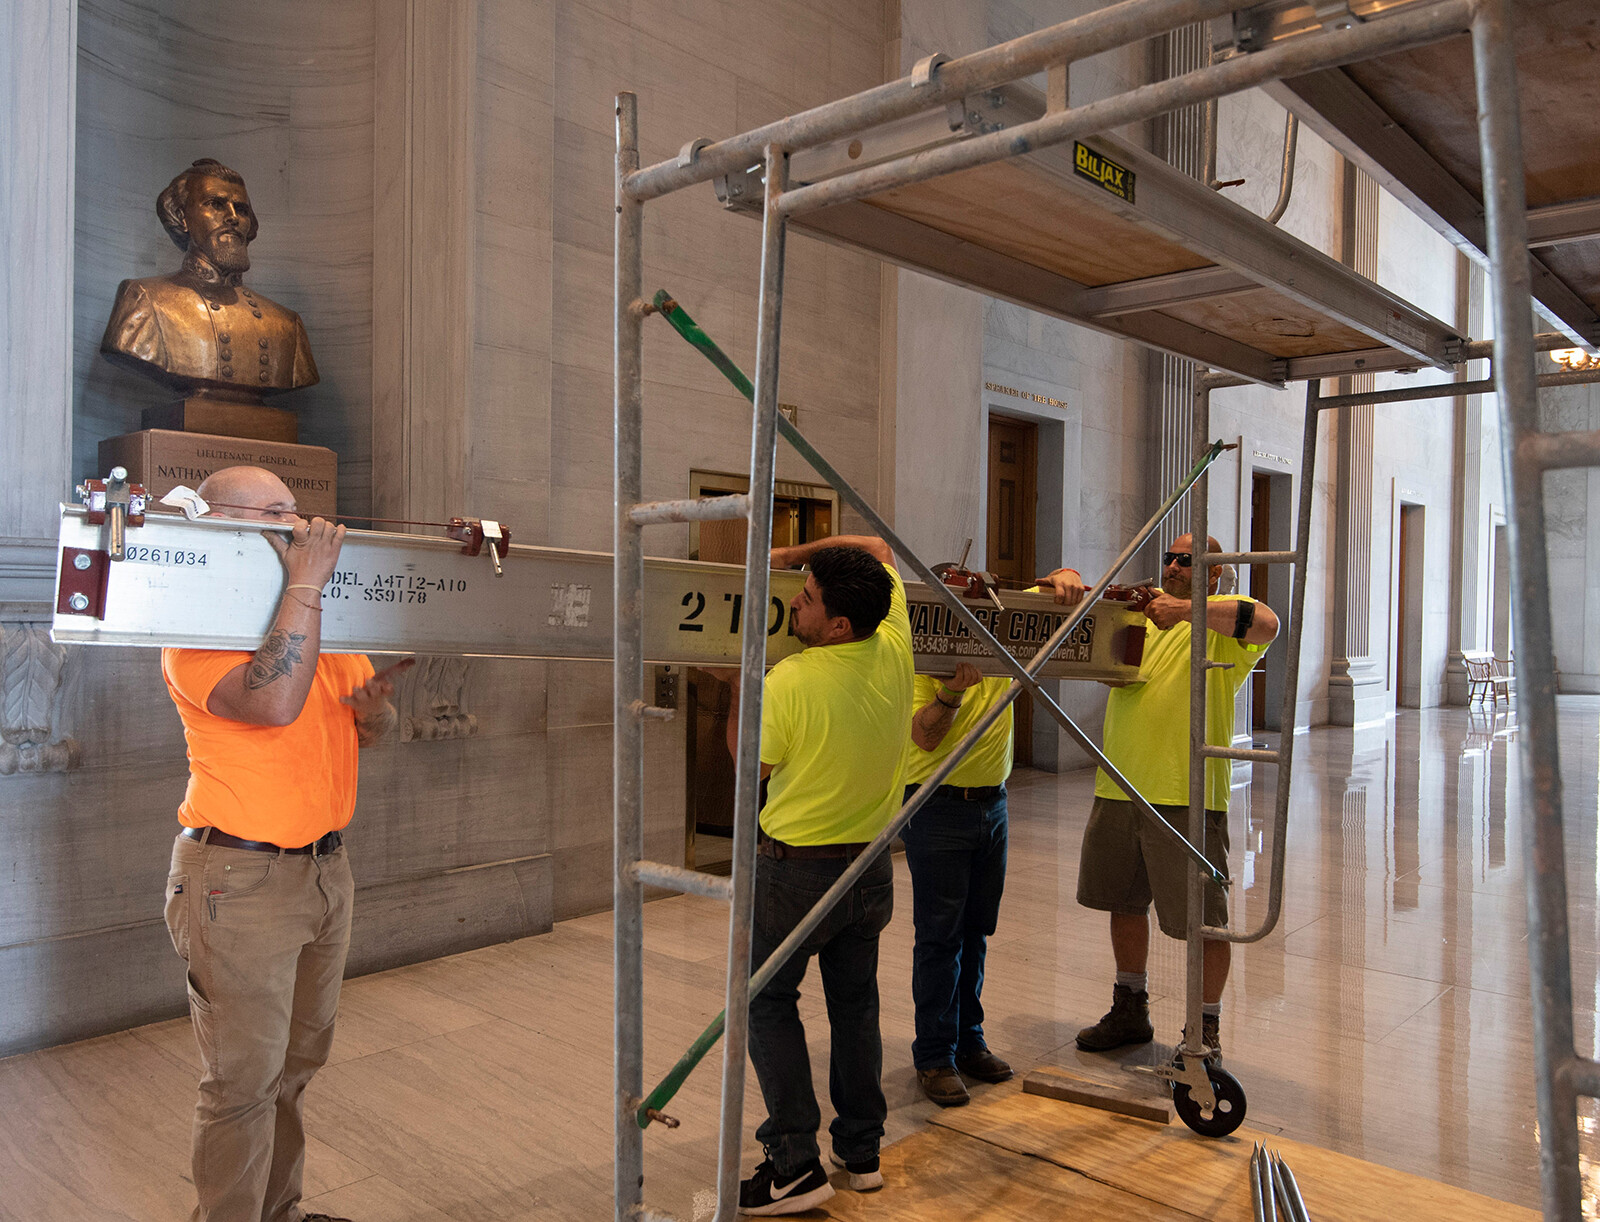 <i>George Walker IV/The Tennessean/USA Today Network</i><br/>Workers prepare scaffolding at the Nathan Bedford Forrest bust in the State Capitol in Nashville